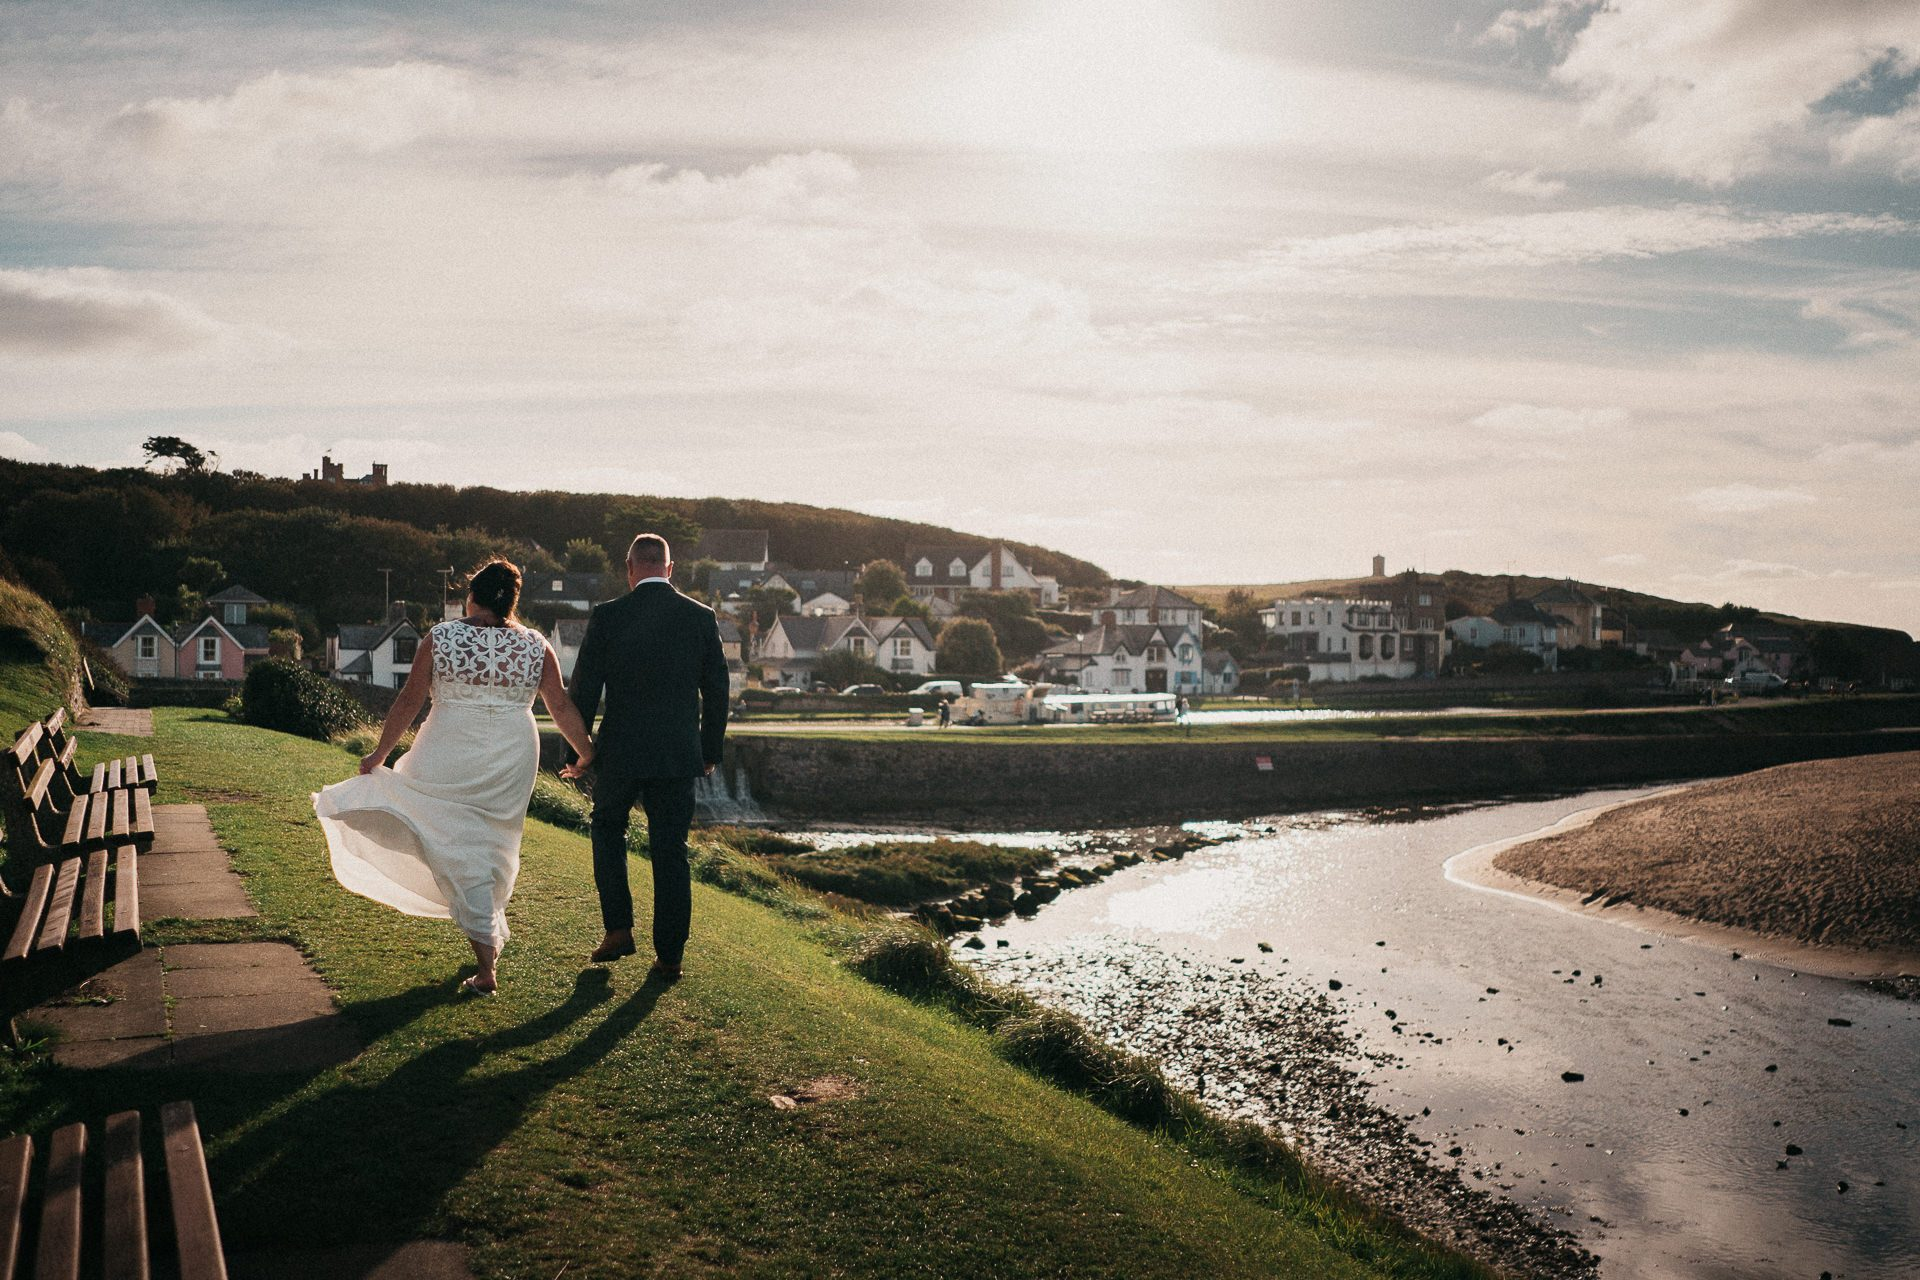 0109-DEVON-SOMERSET-WEDDING-PHOTOGRAPHER-0545-BEST-OF-2019-LOUISE-MAY-DEVON-SOMERSET-WEDDING-PHOTOGRAPHY-20190910-17-35-36-20190910173536LM107746